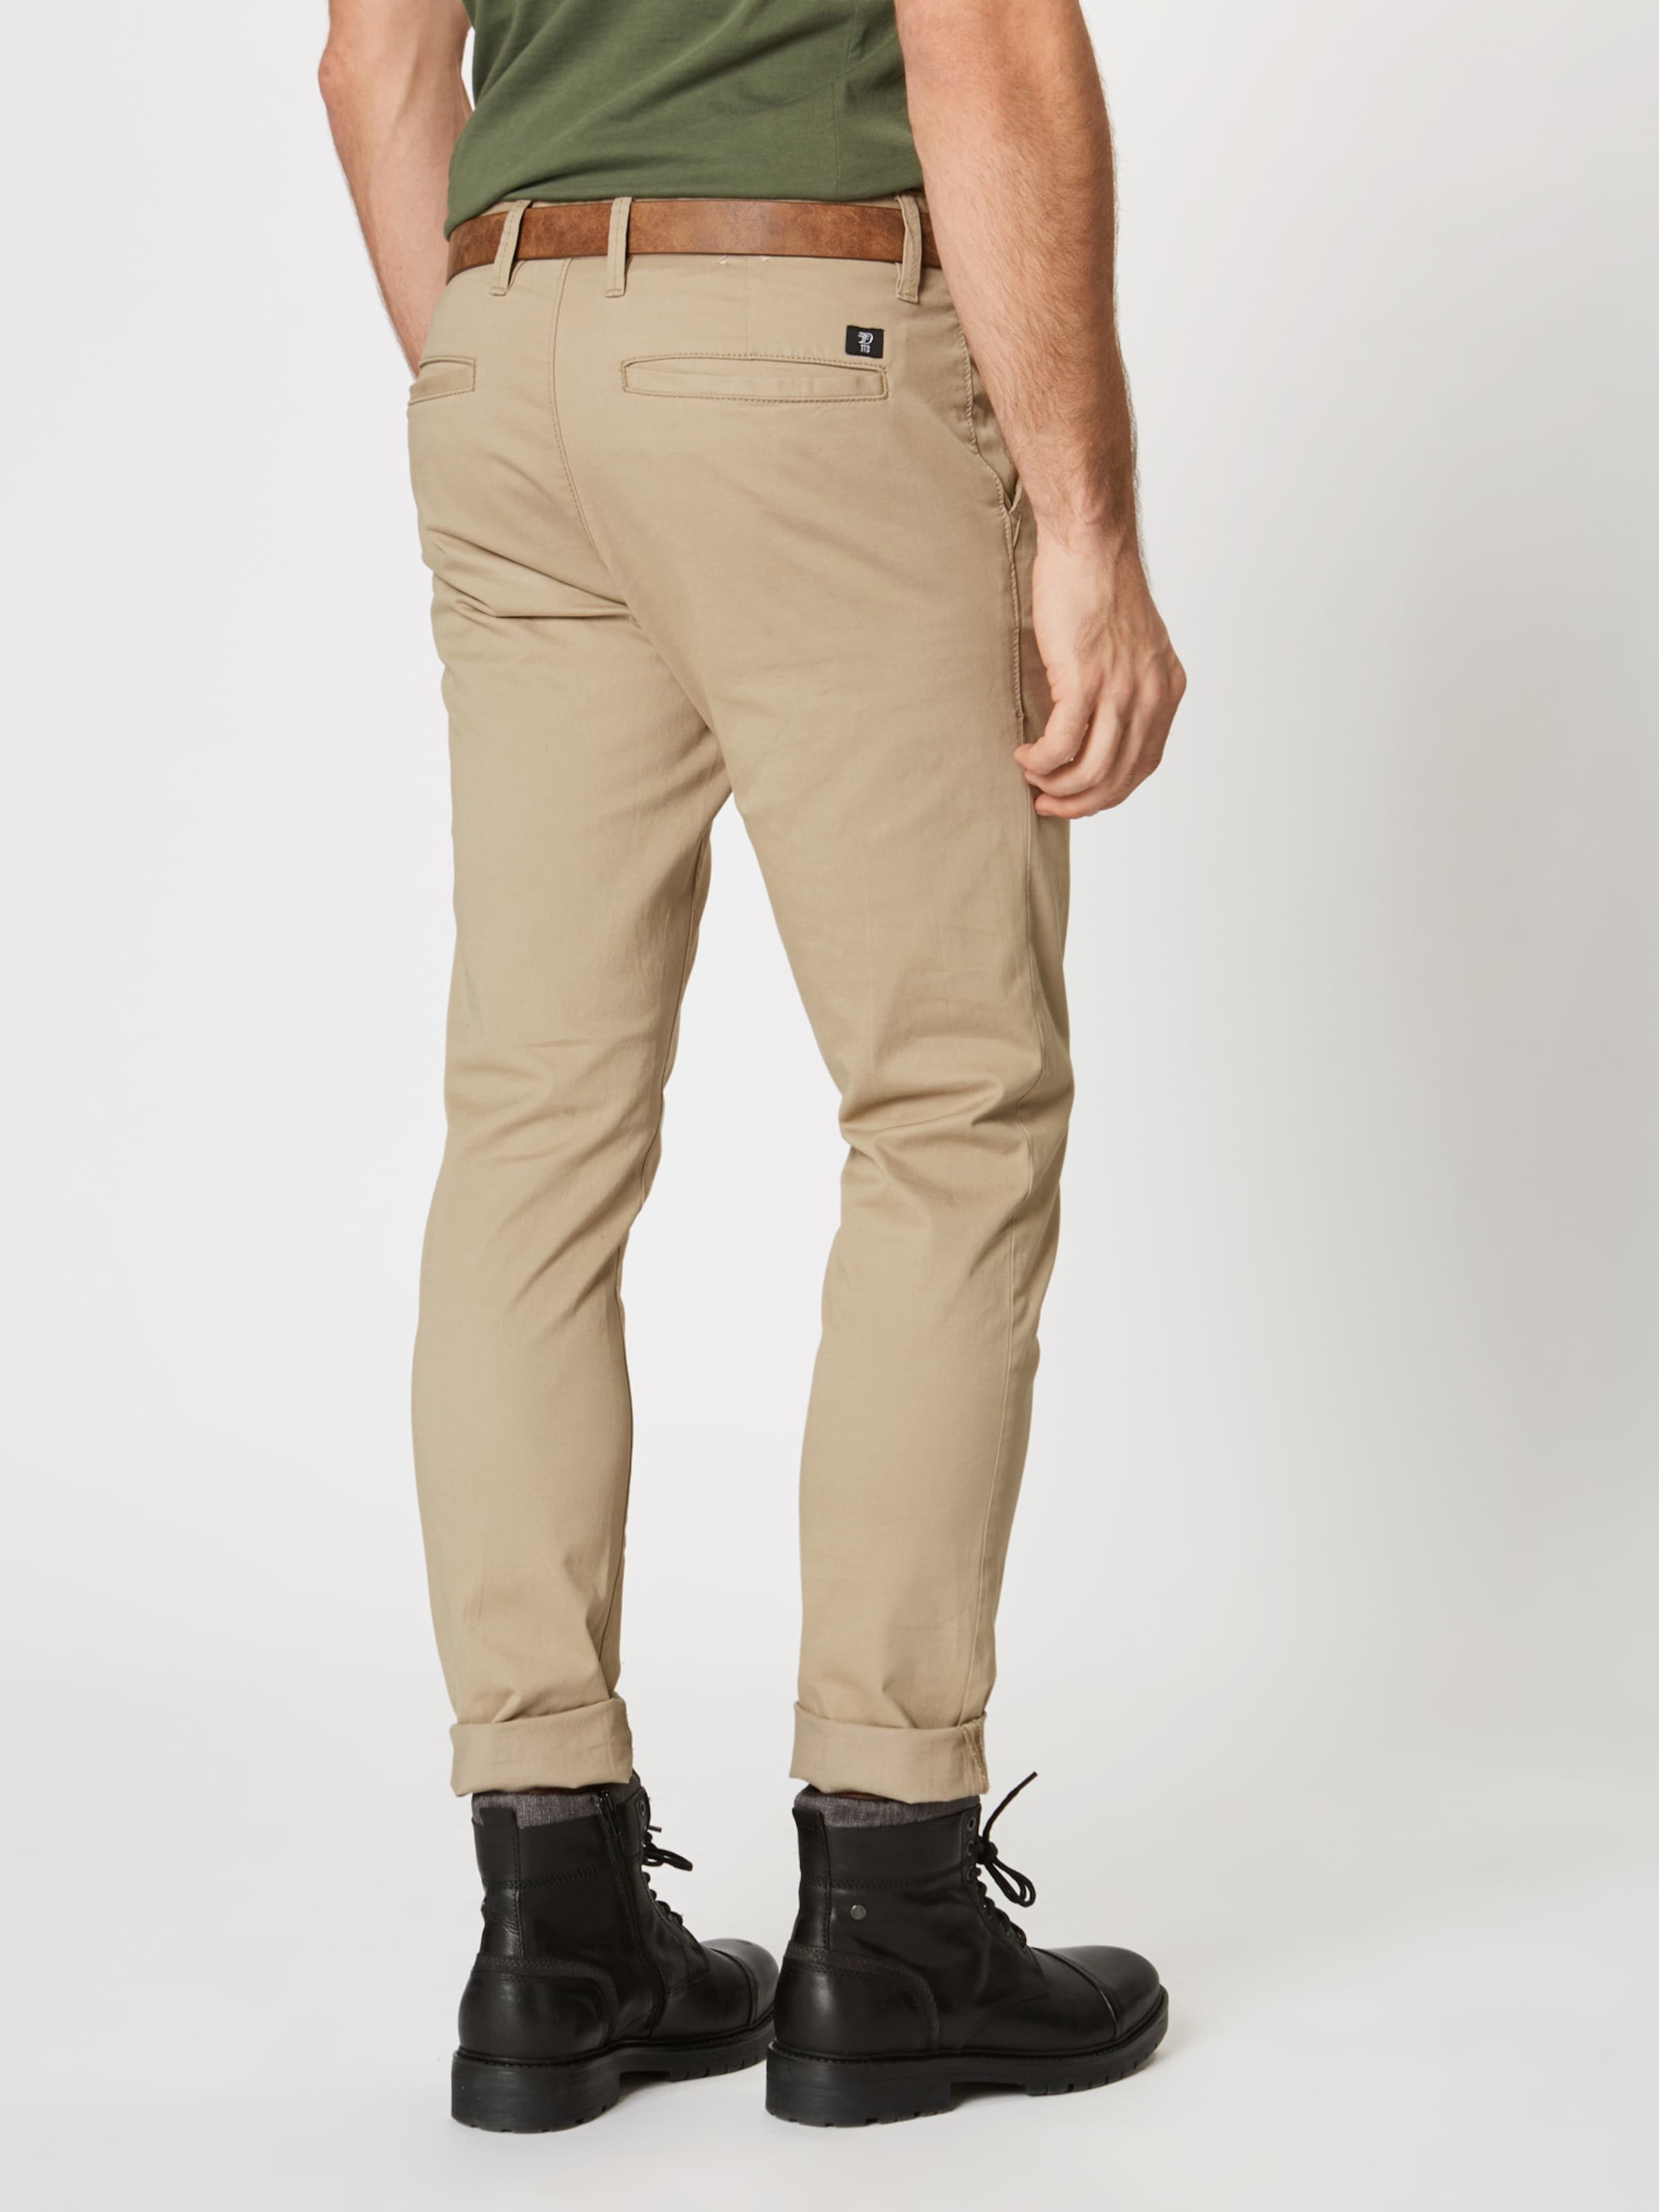 Pantalon En Denim Chino Tom Vert Tailor Foncé kiuZOTPX